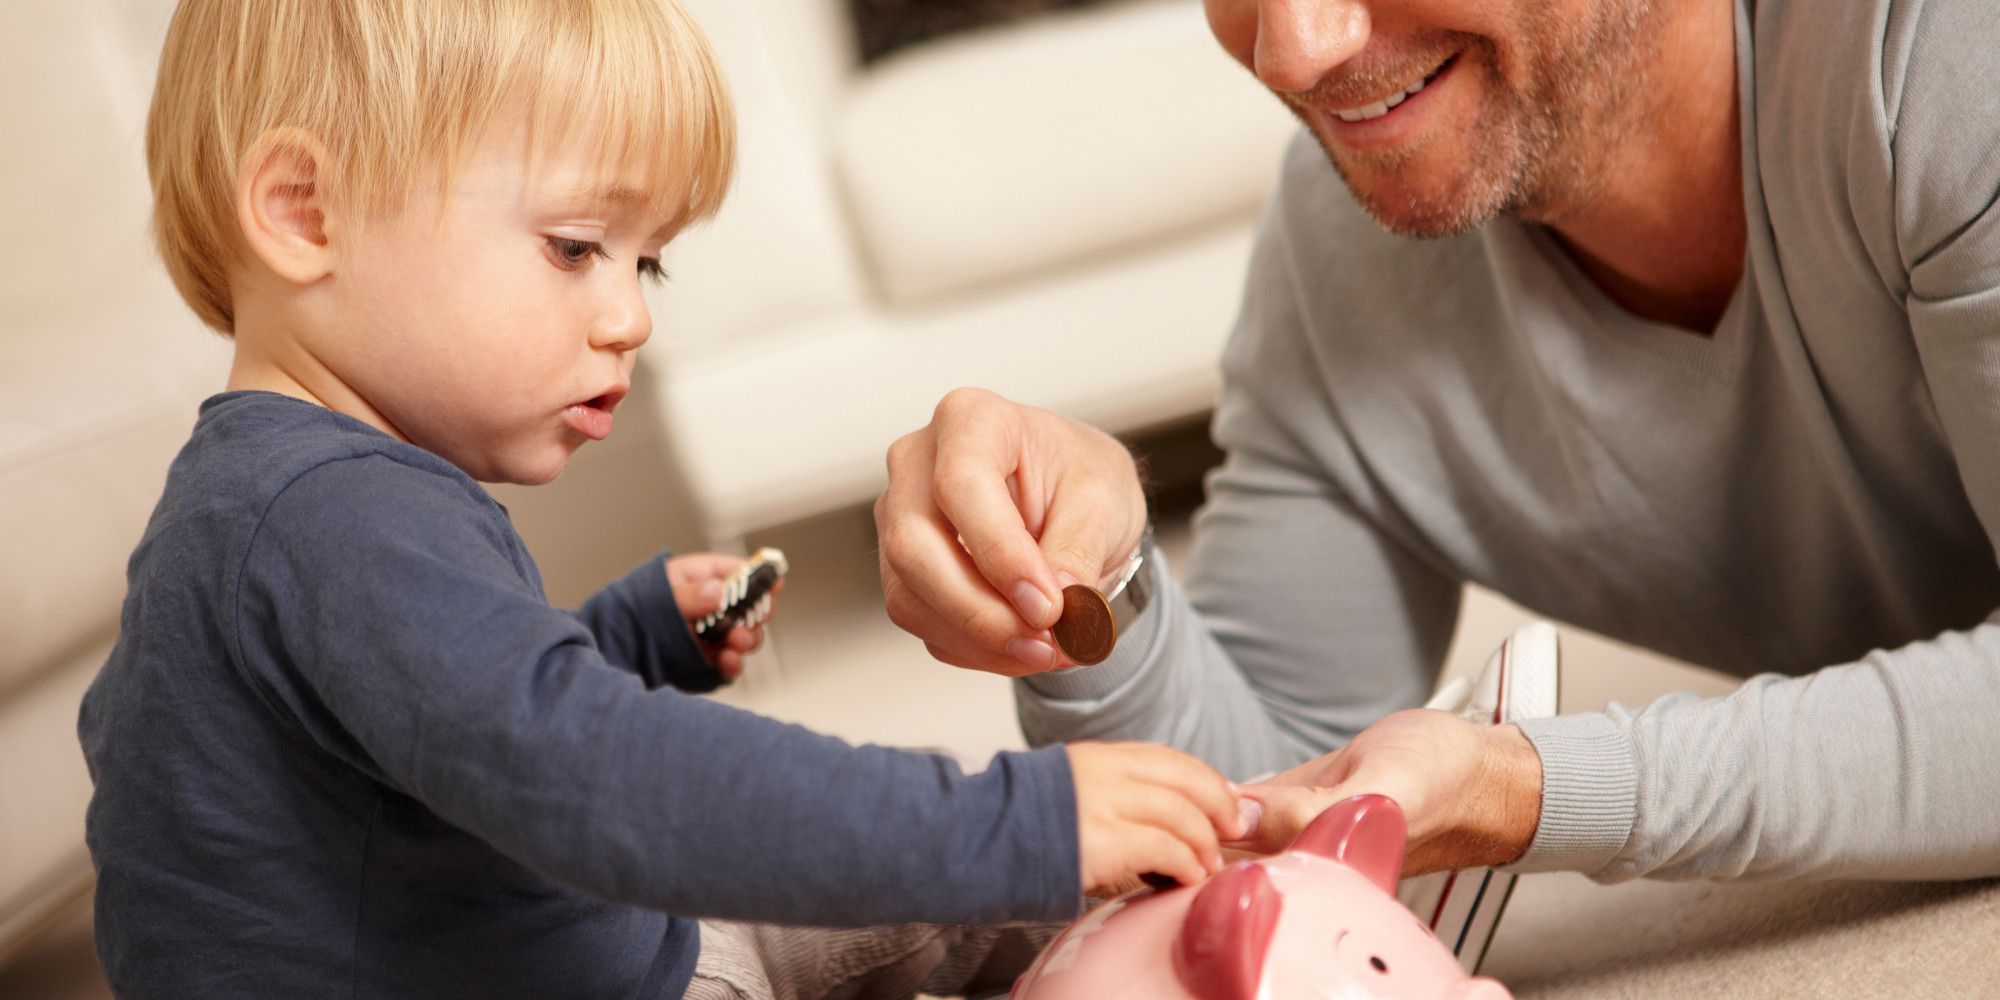 Father and son putting coins in piggy bank